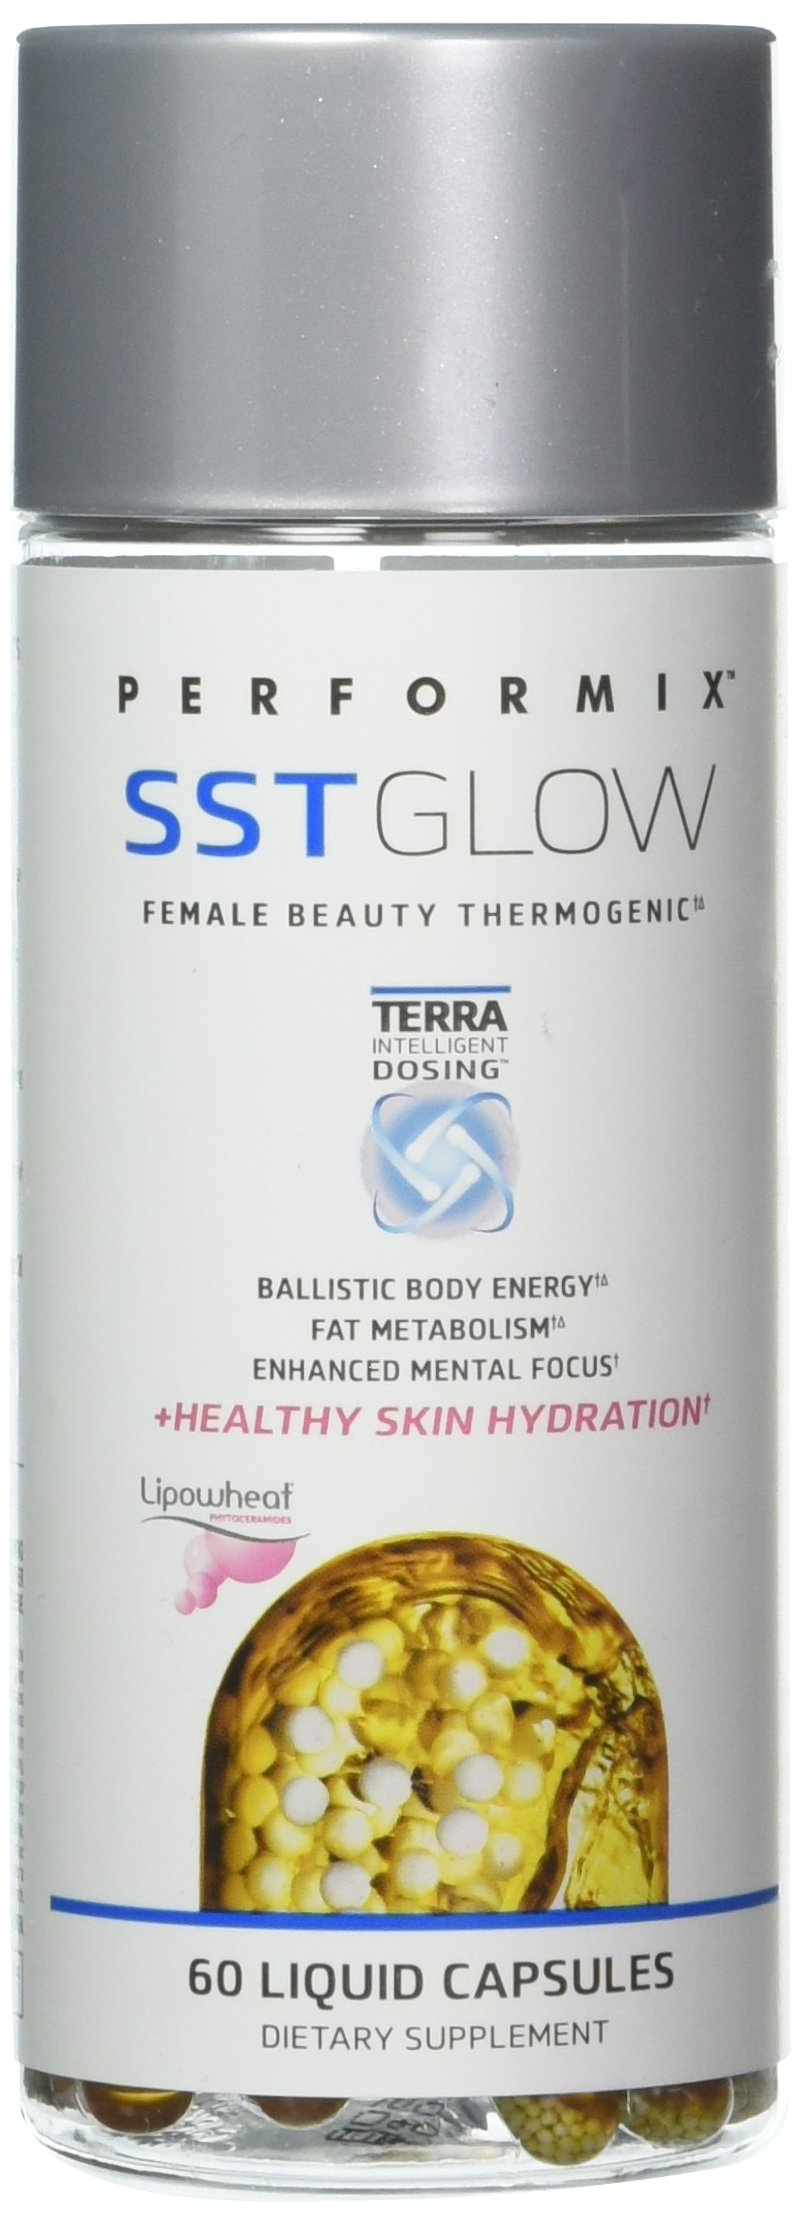 PERFORMIX SST GLOW Female Thermogenic, Energy, Fat Metabolism, Skin Hydration, 60 capsules